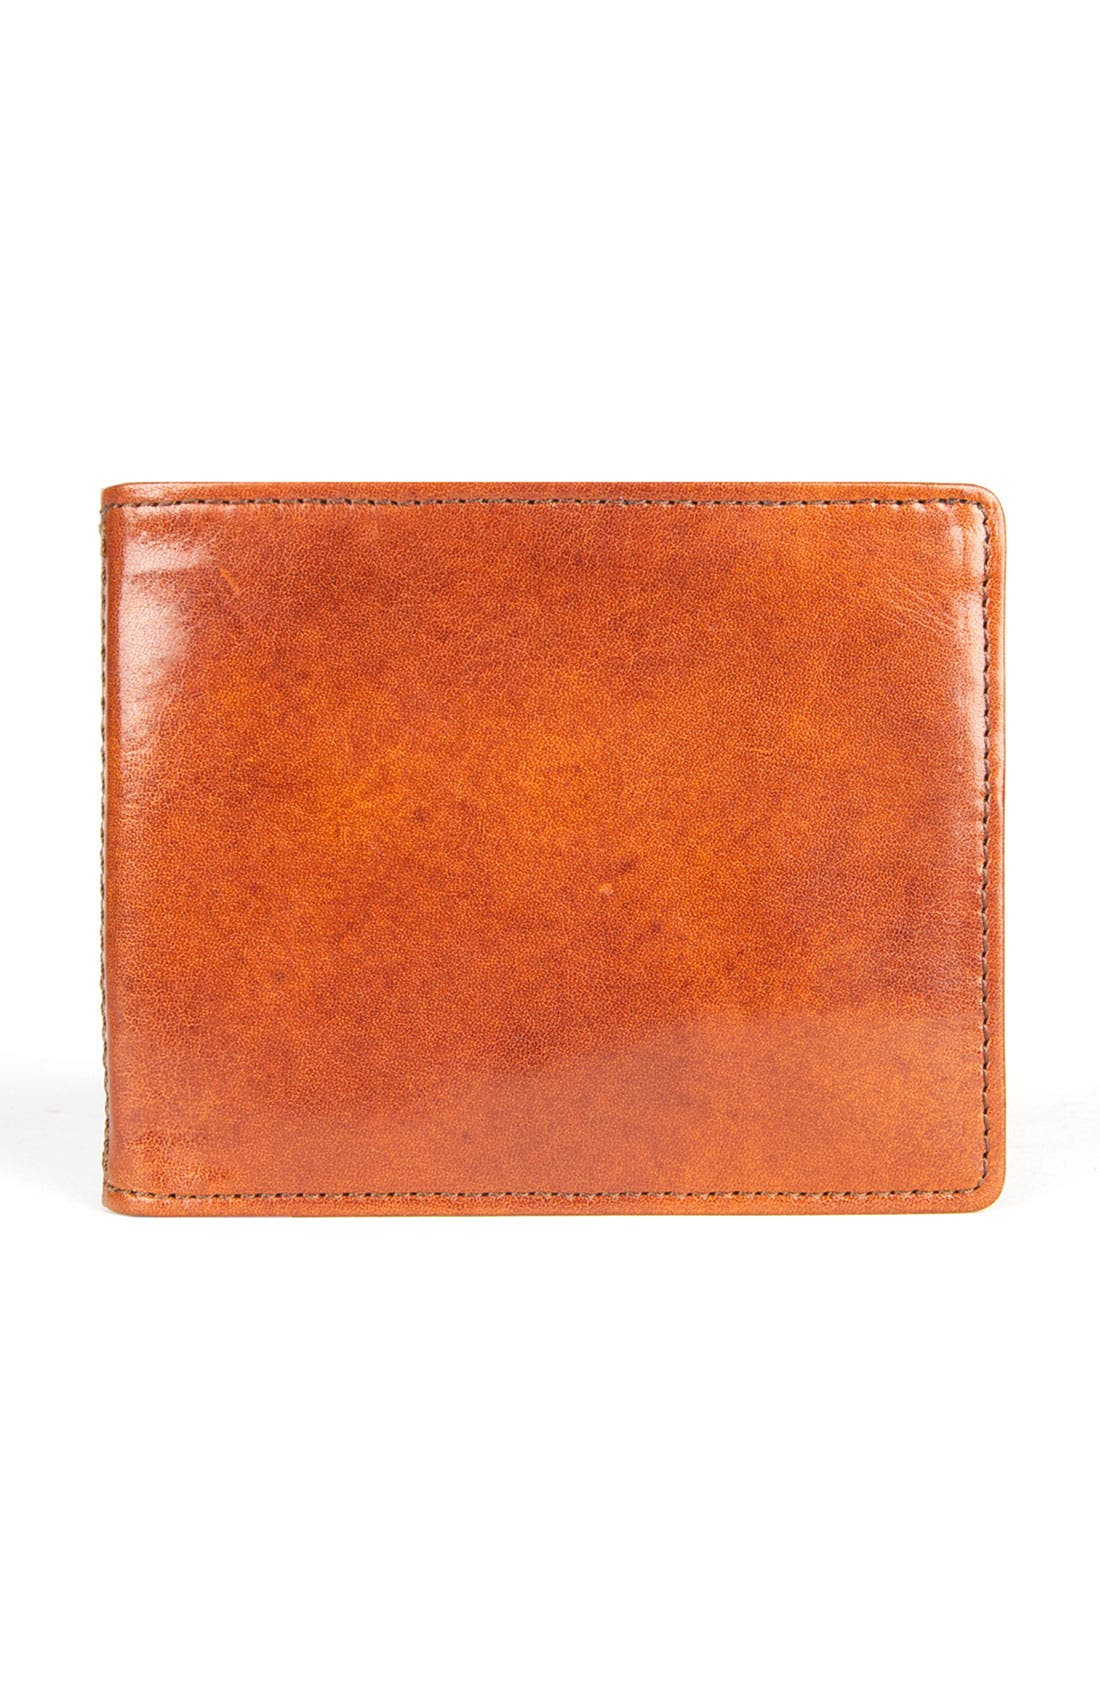 Alternate Image 1 Selected - Bosca 'Old Leather' Wallet